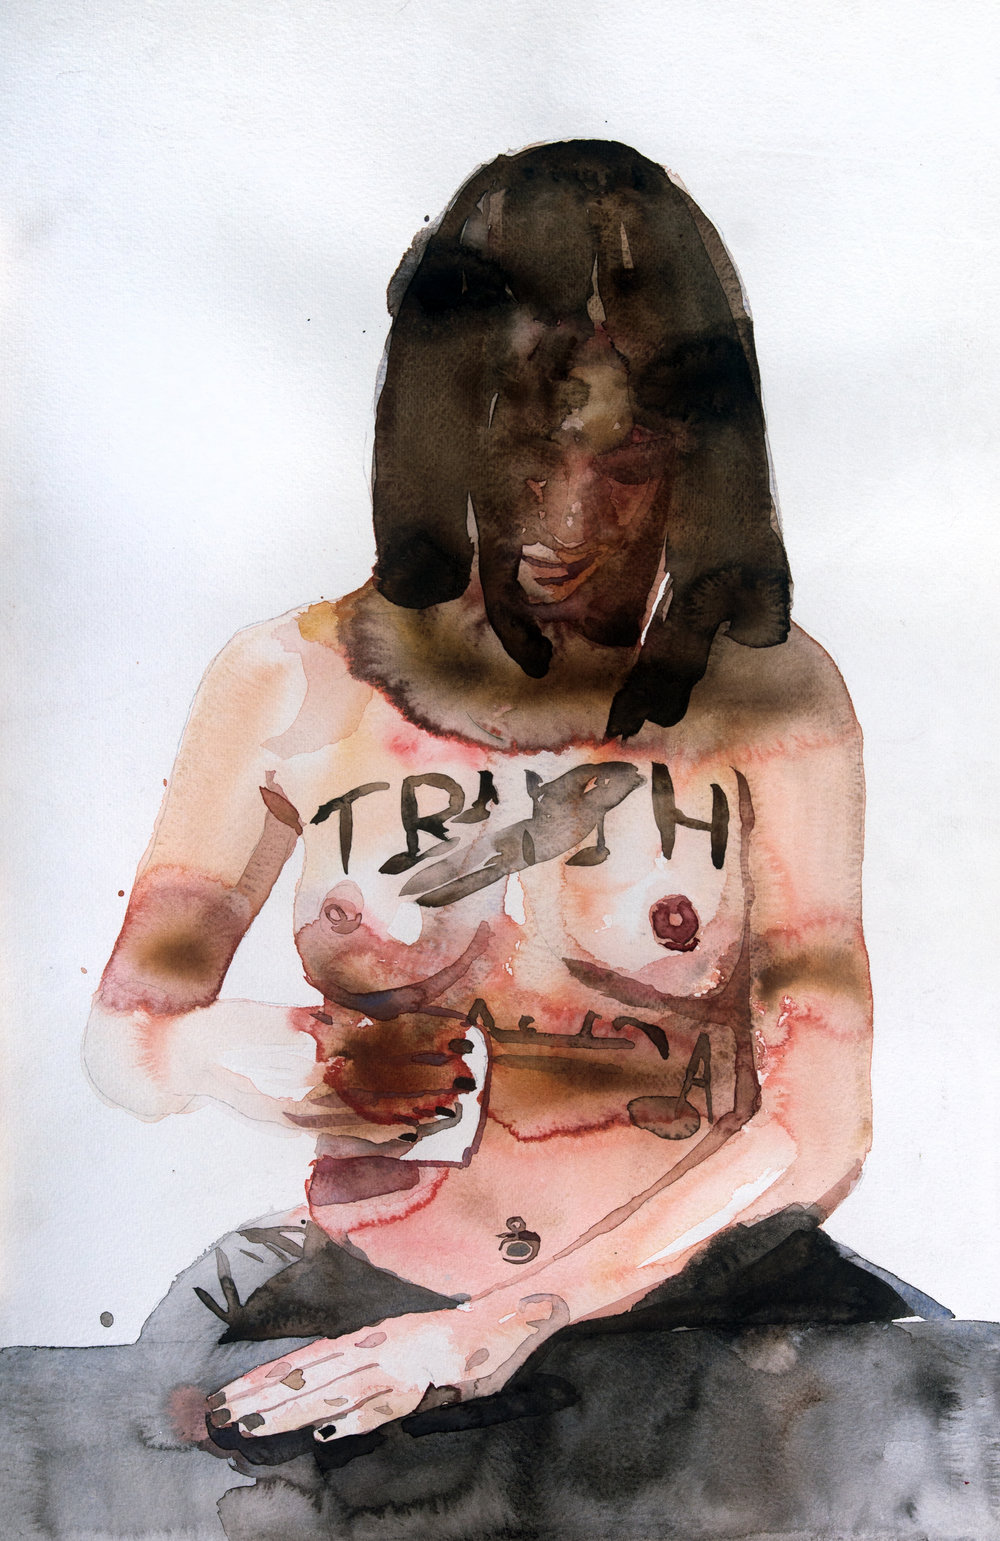 TRUTH l watercolor l 56 x 37 cm l 2015